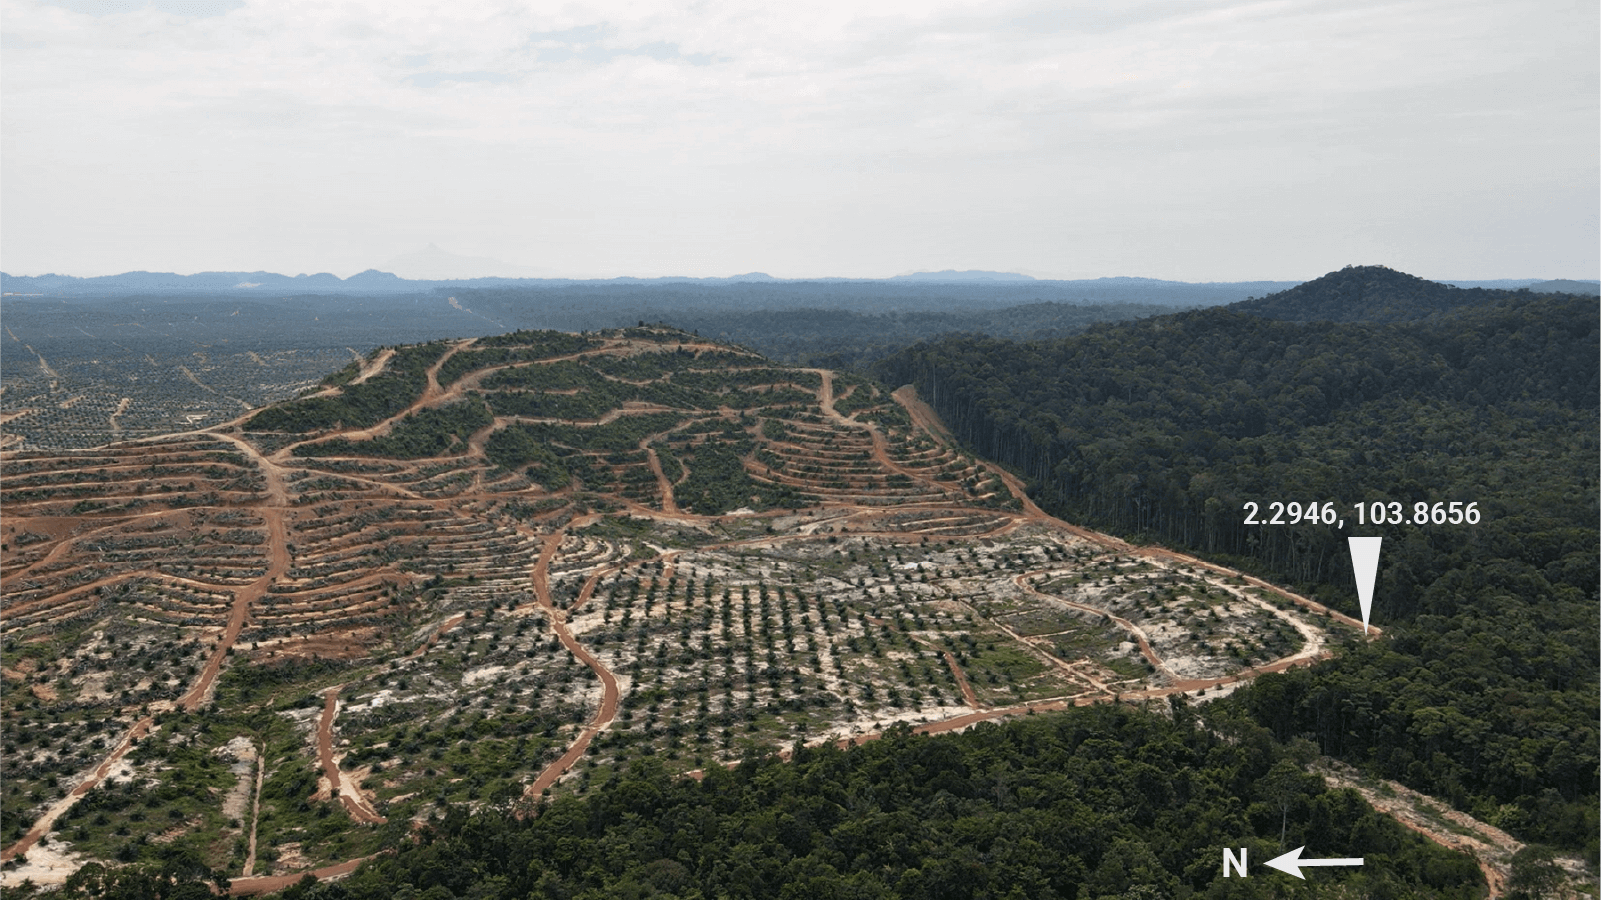 A 2,190 ha oil palm plantation developed by AA Sawit in part of the excised Jemaluang forest reserve, Johor. The remaining Jemaluang forest stretches south of the plantation. (Photo taken 12 September 2021 by IMR Kreatif)